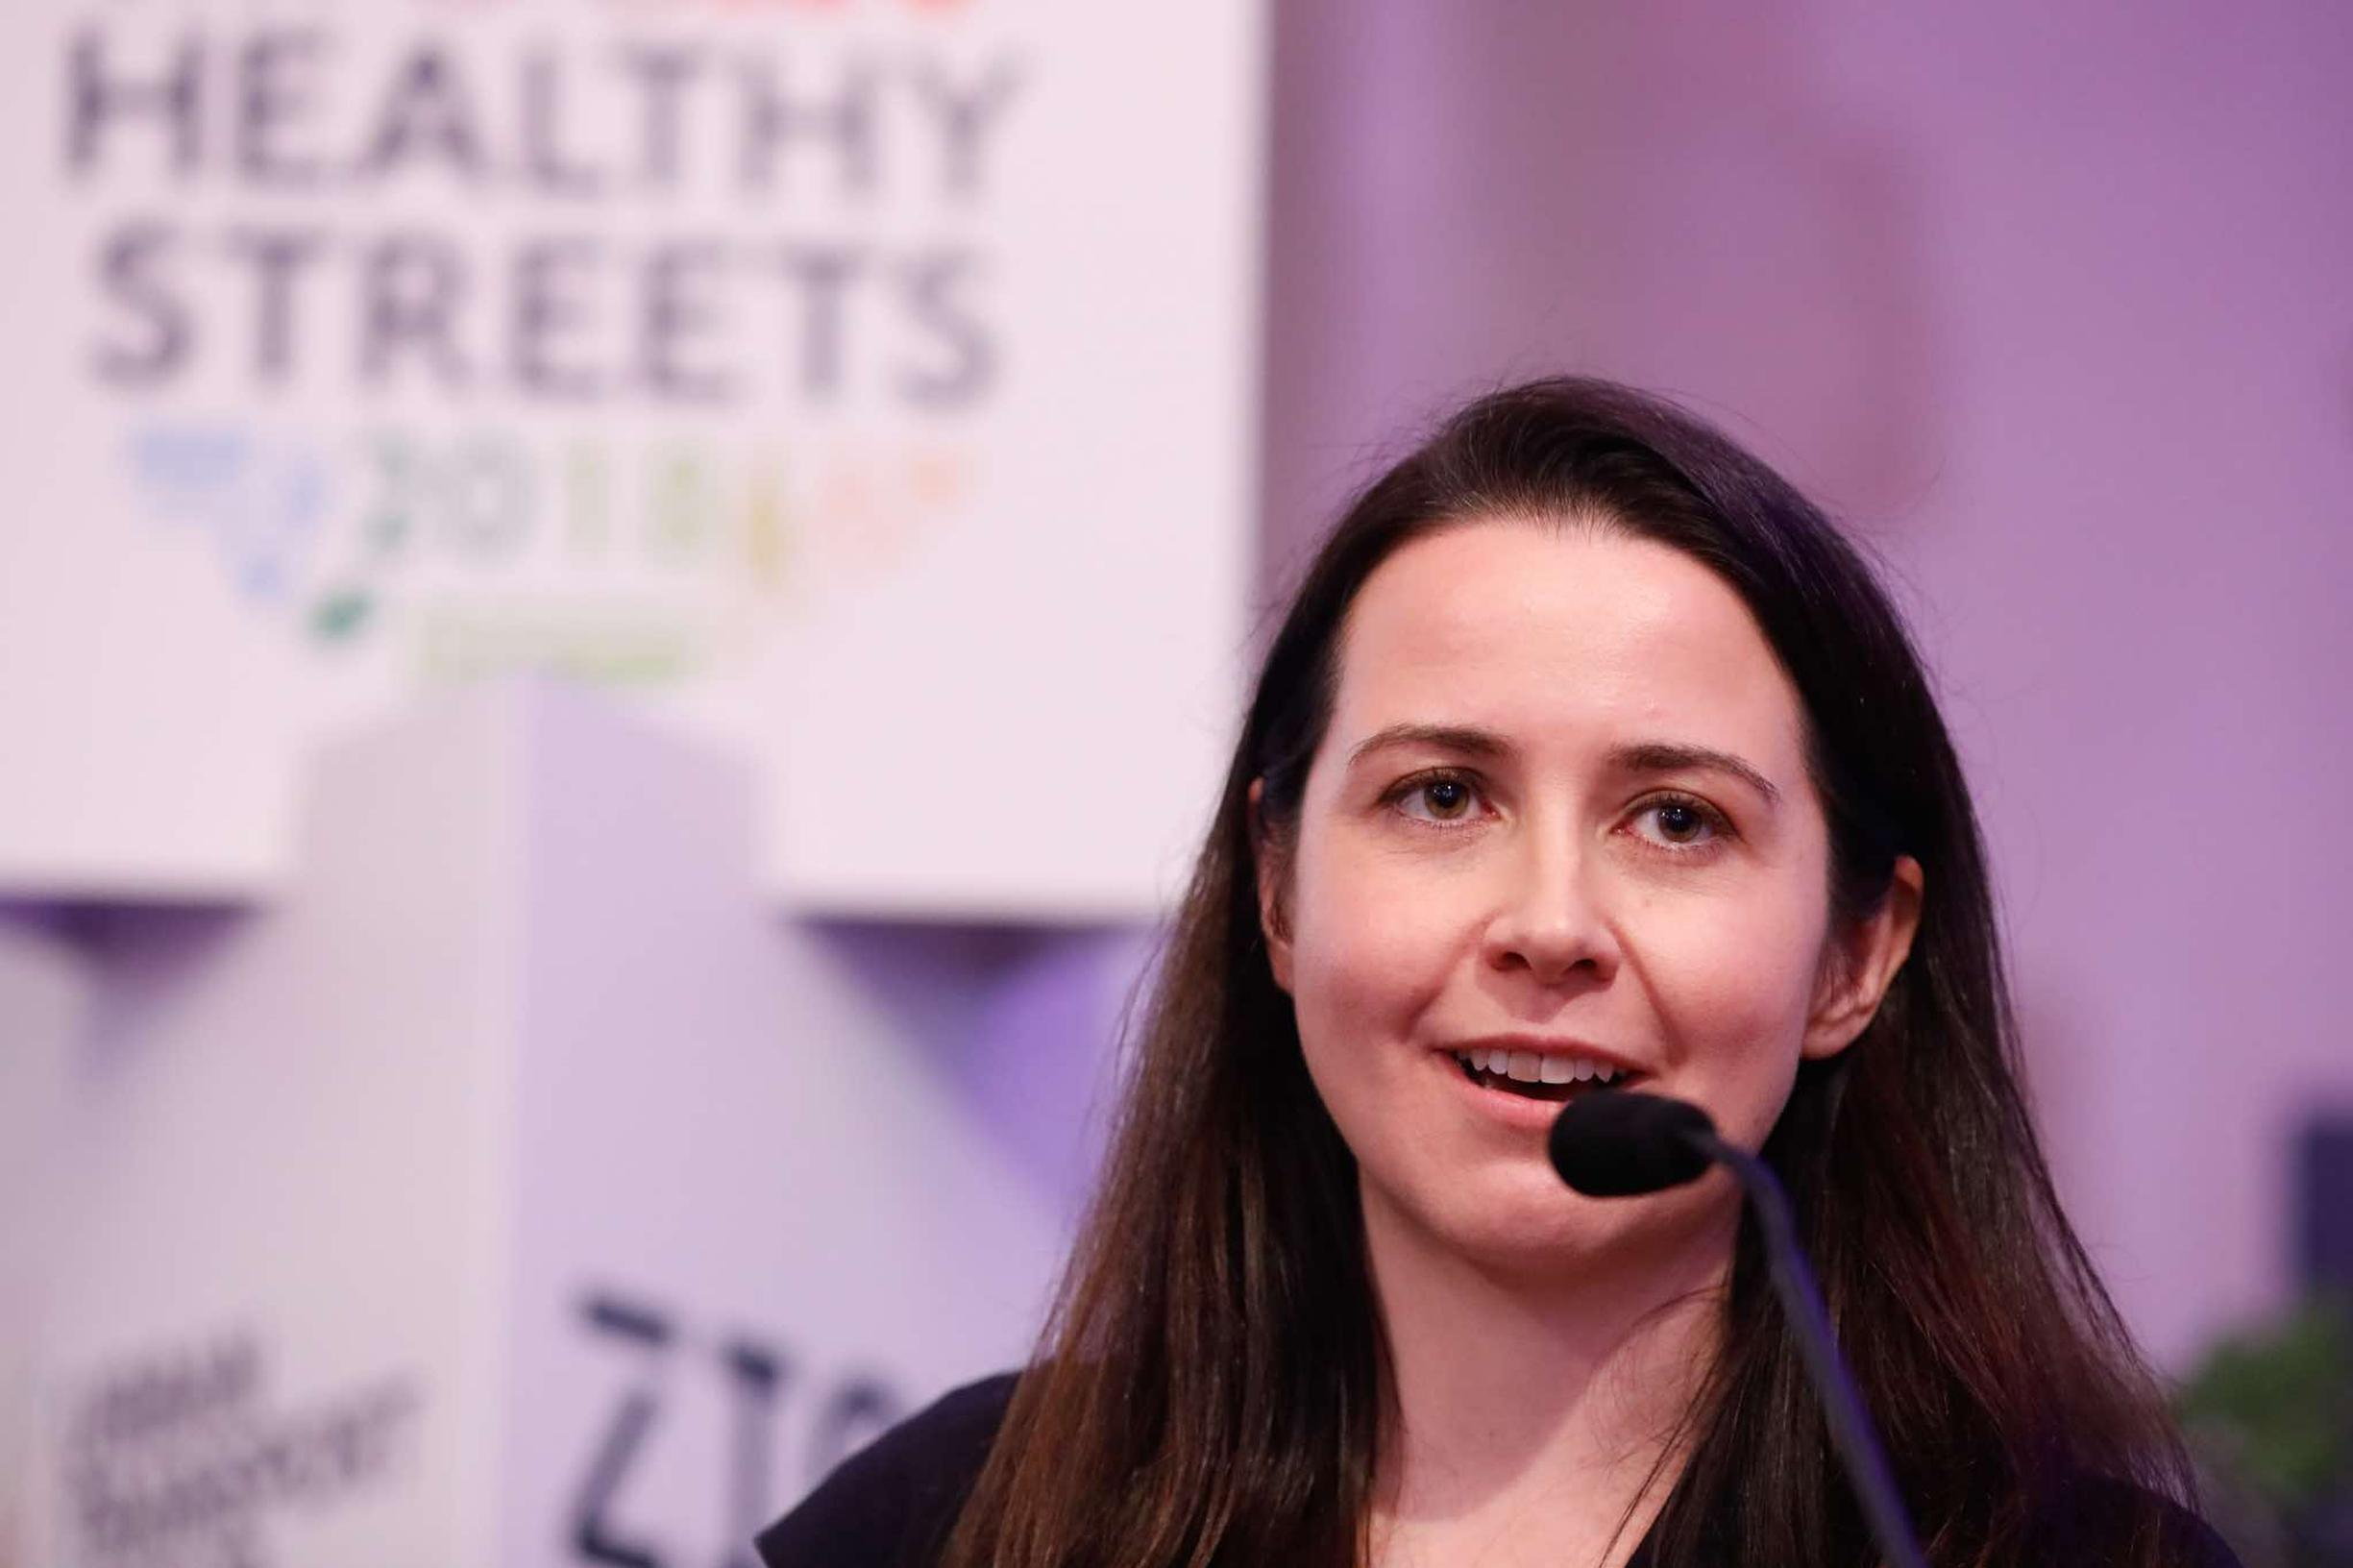 Lucy Saunders, Consultant in Public Health, Transport for London and the Greater London Authority, and the architect of the Healthy Streets approach